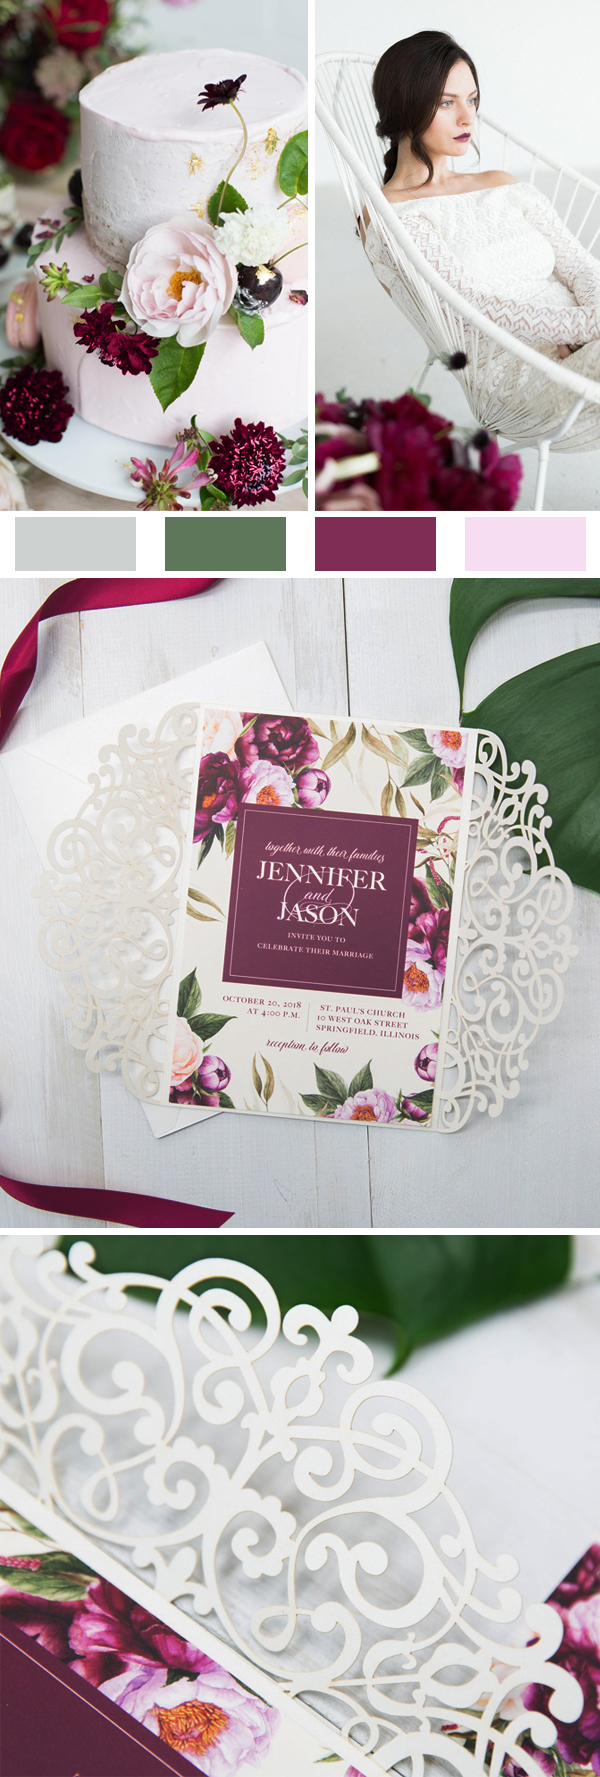 Boho Styled Burgundy Watercolor Floral Wedding Invitations EWDK001